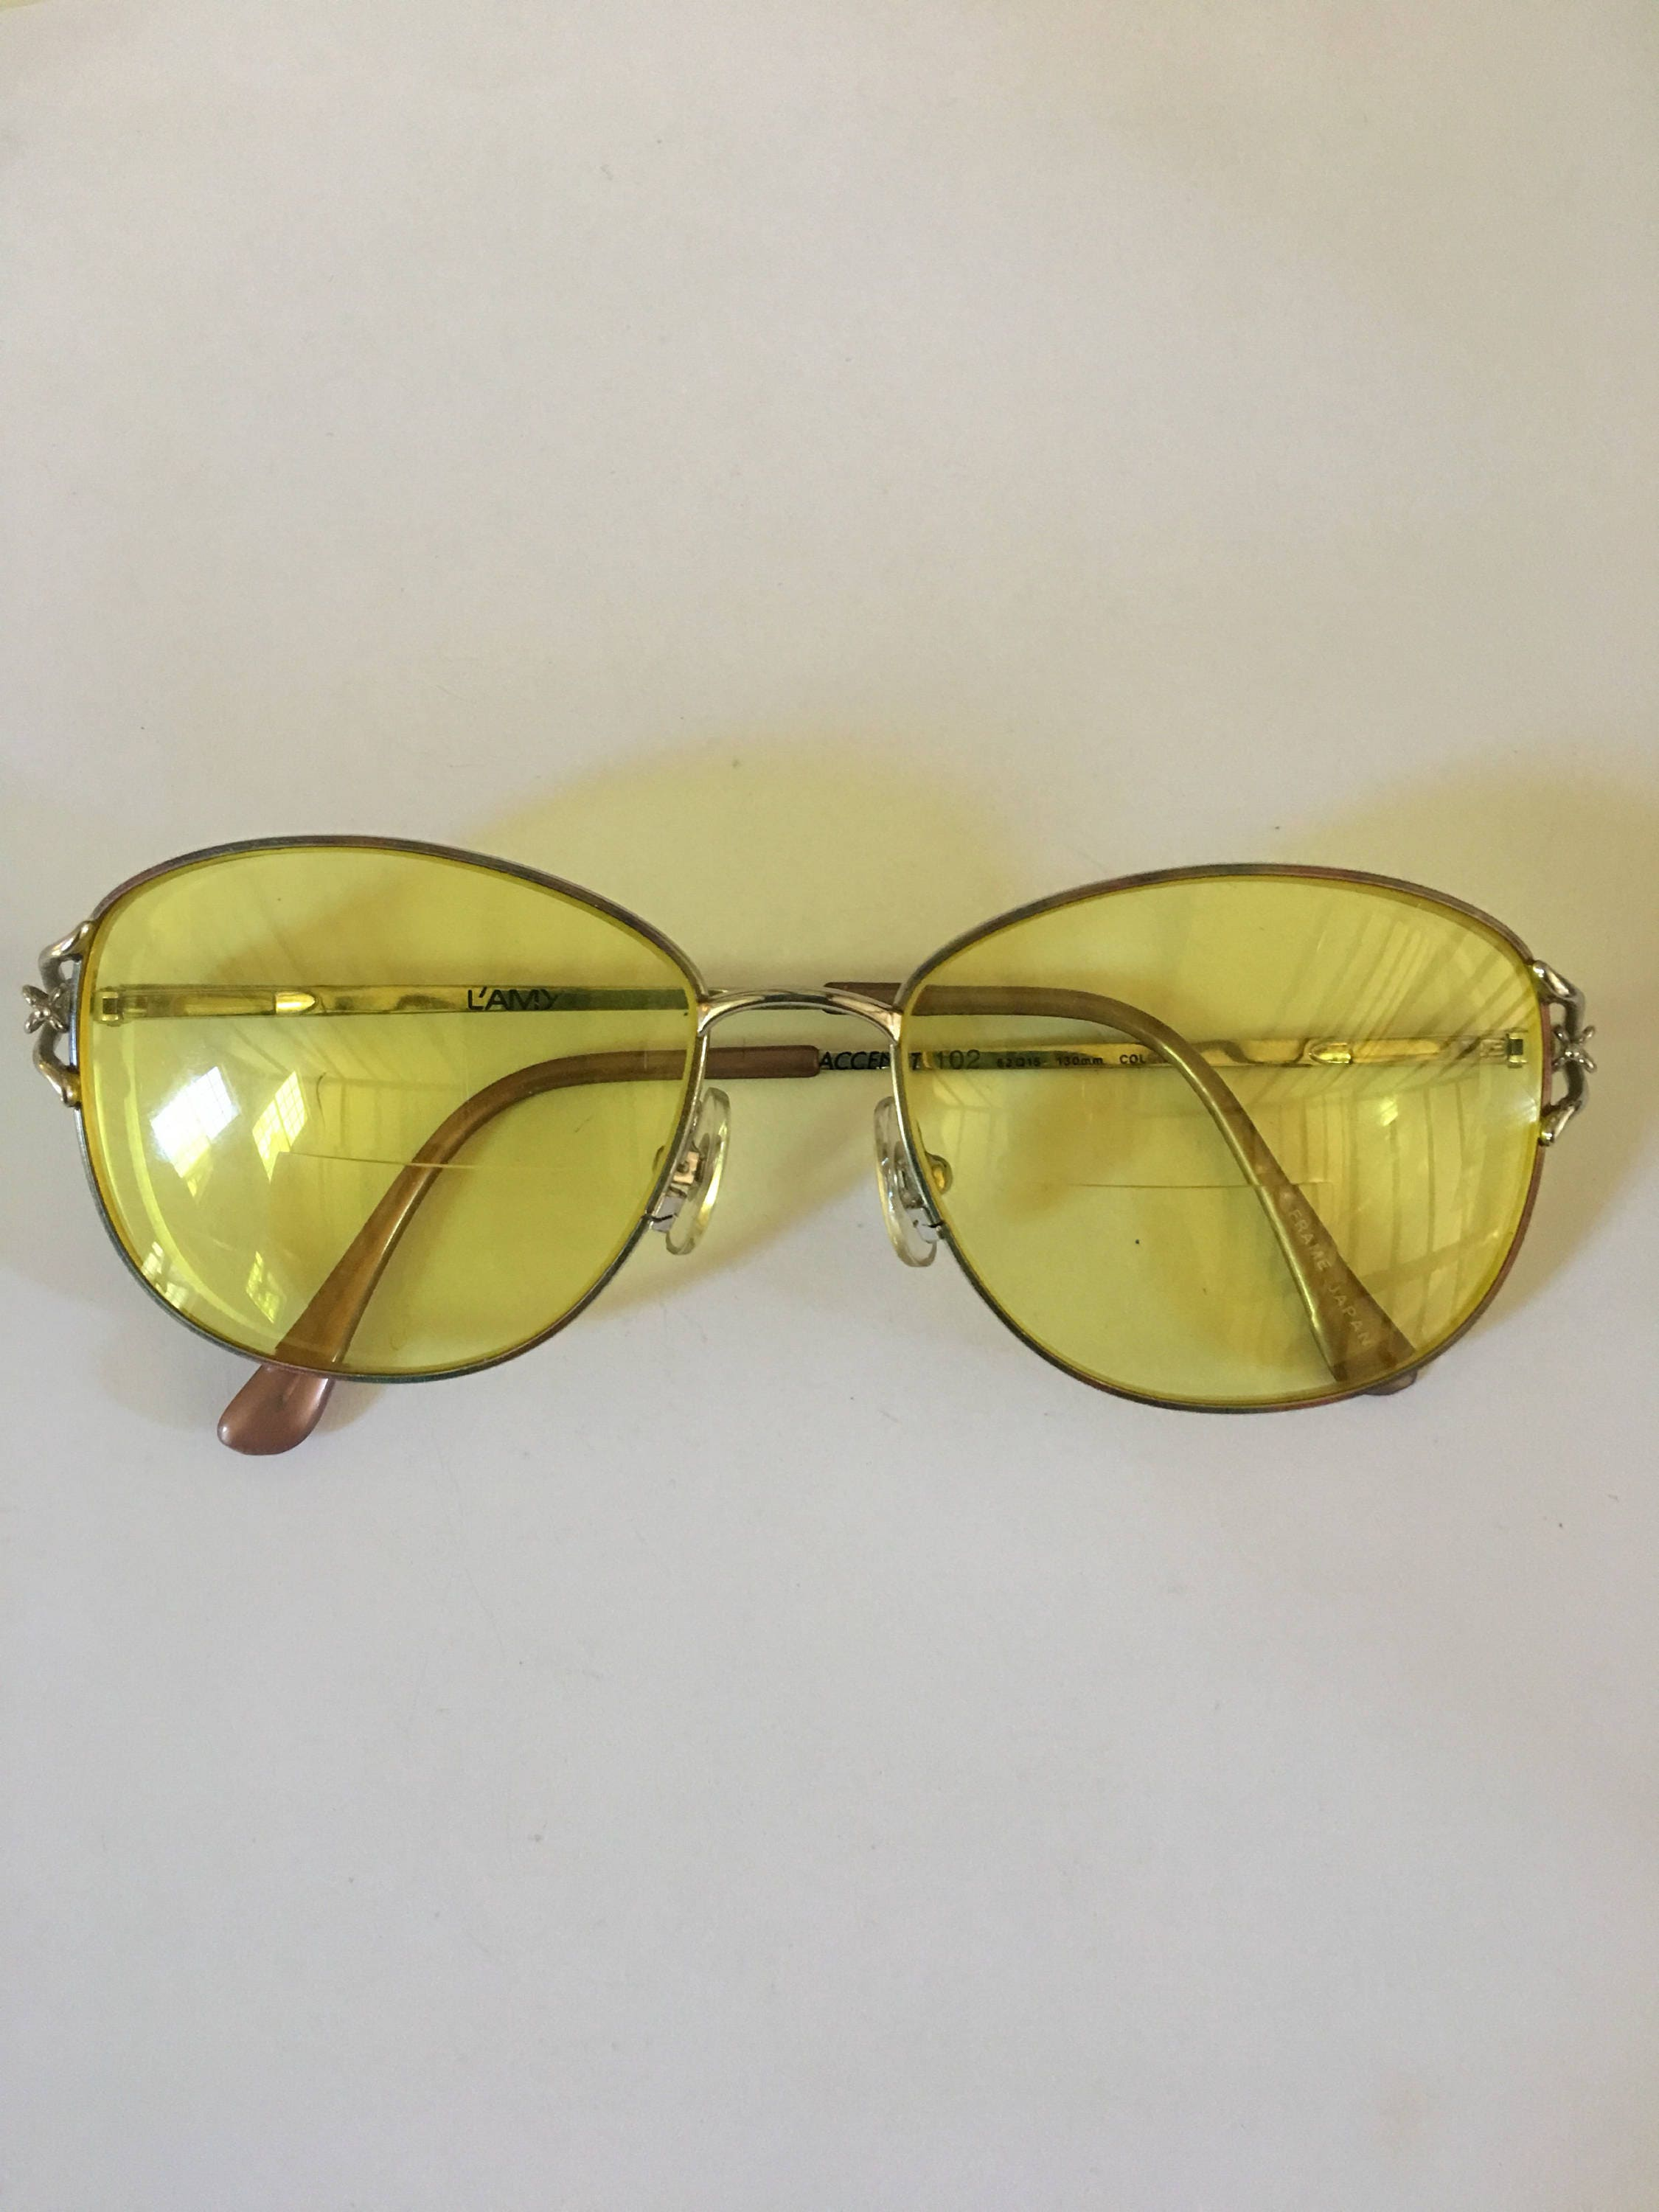 d4cfc8d5ff5f8 Vintage L AMY French prescription sunglasses with rare yellow lenses.